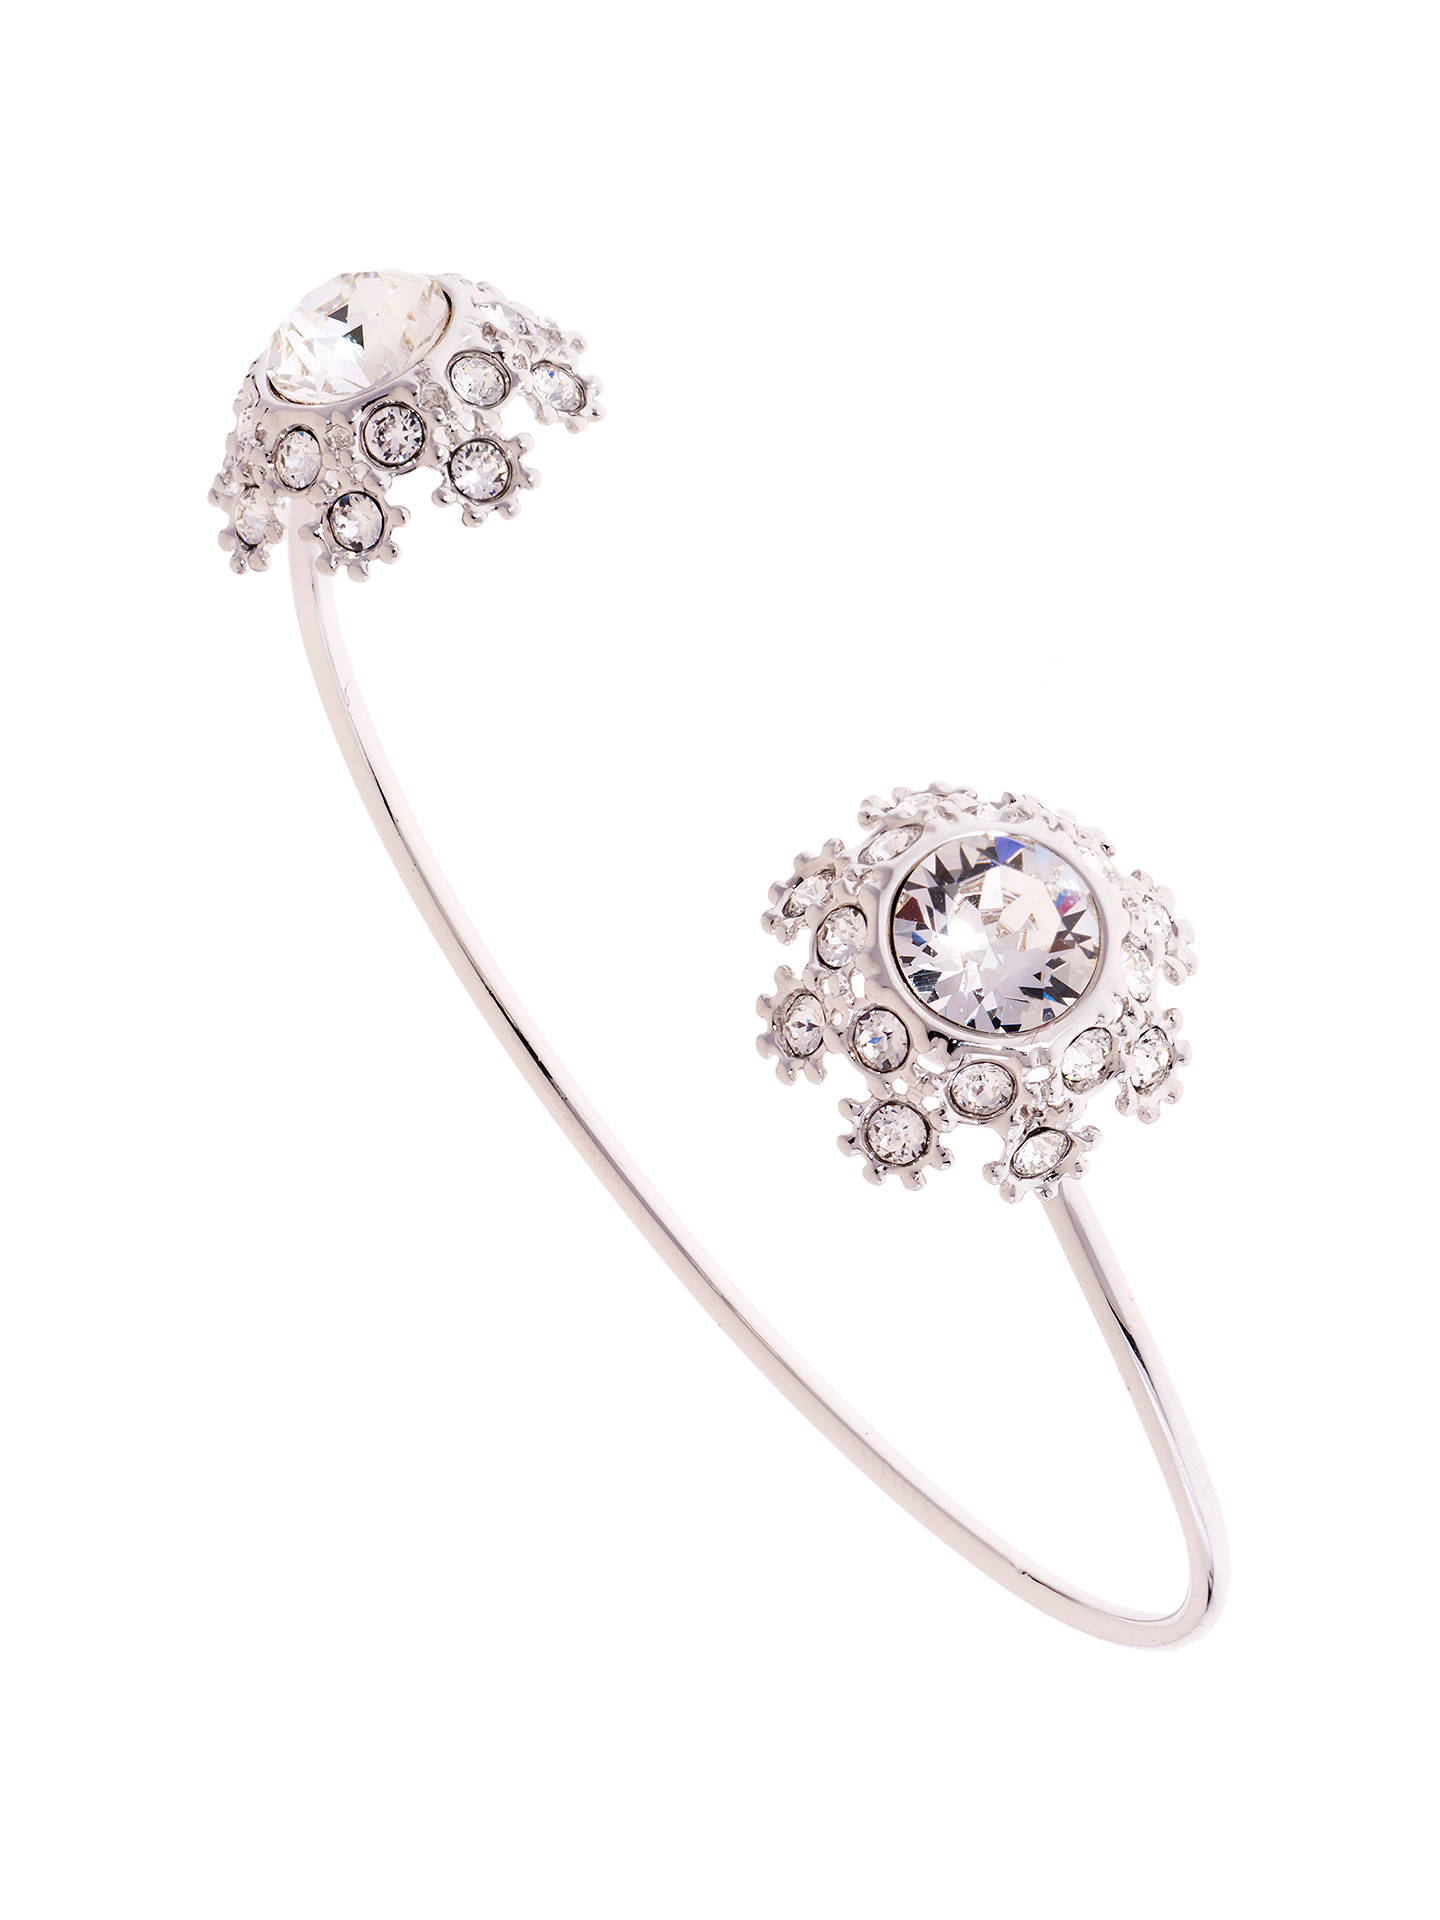 BuyTed Baker Seniie Swarovski Crystal Daisy Lace Cuff, Silver Online at johnlewis.com